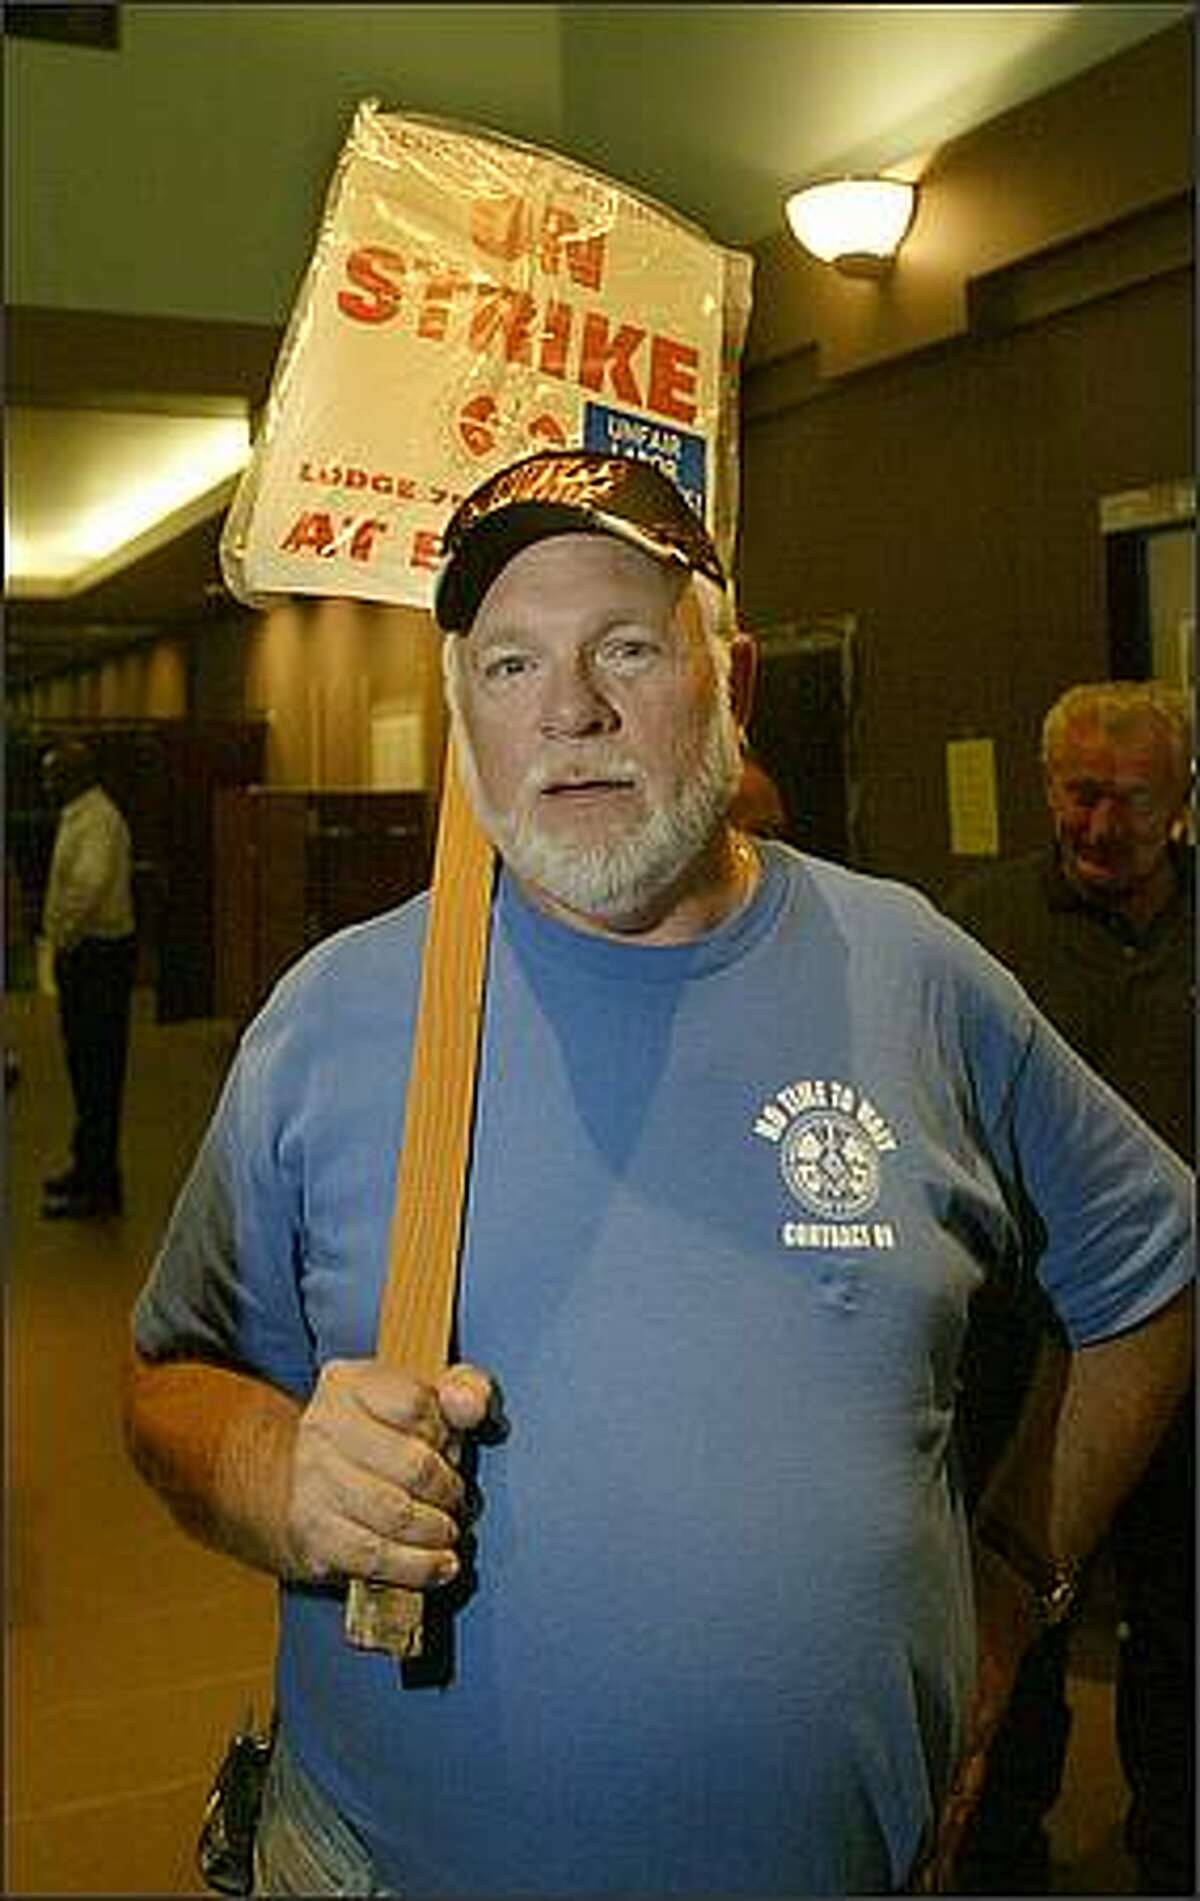 Rick Herrmann who has worked for Boeing for 41 years holds a strike sign inside Seattle Union Hall.